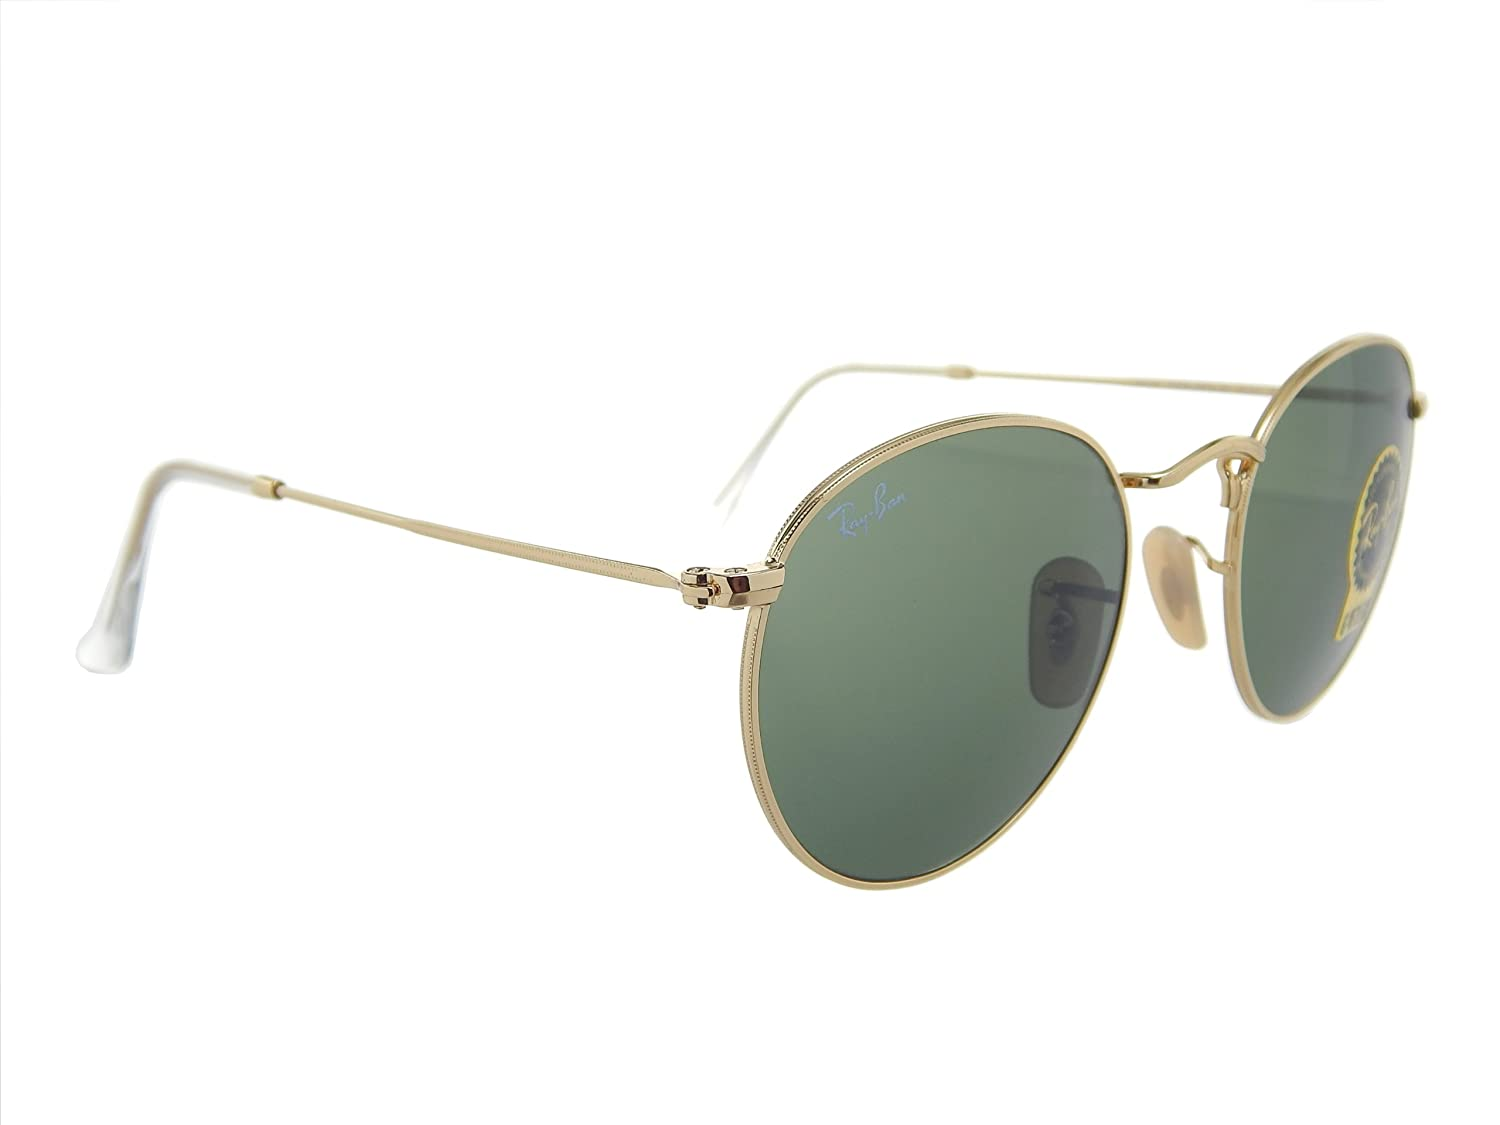 f7206f60a8 Ray Ban Round Metal RB3447 001 Gold Green Classic 50mm Sunglasses  Amazon.de   Bekleidung